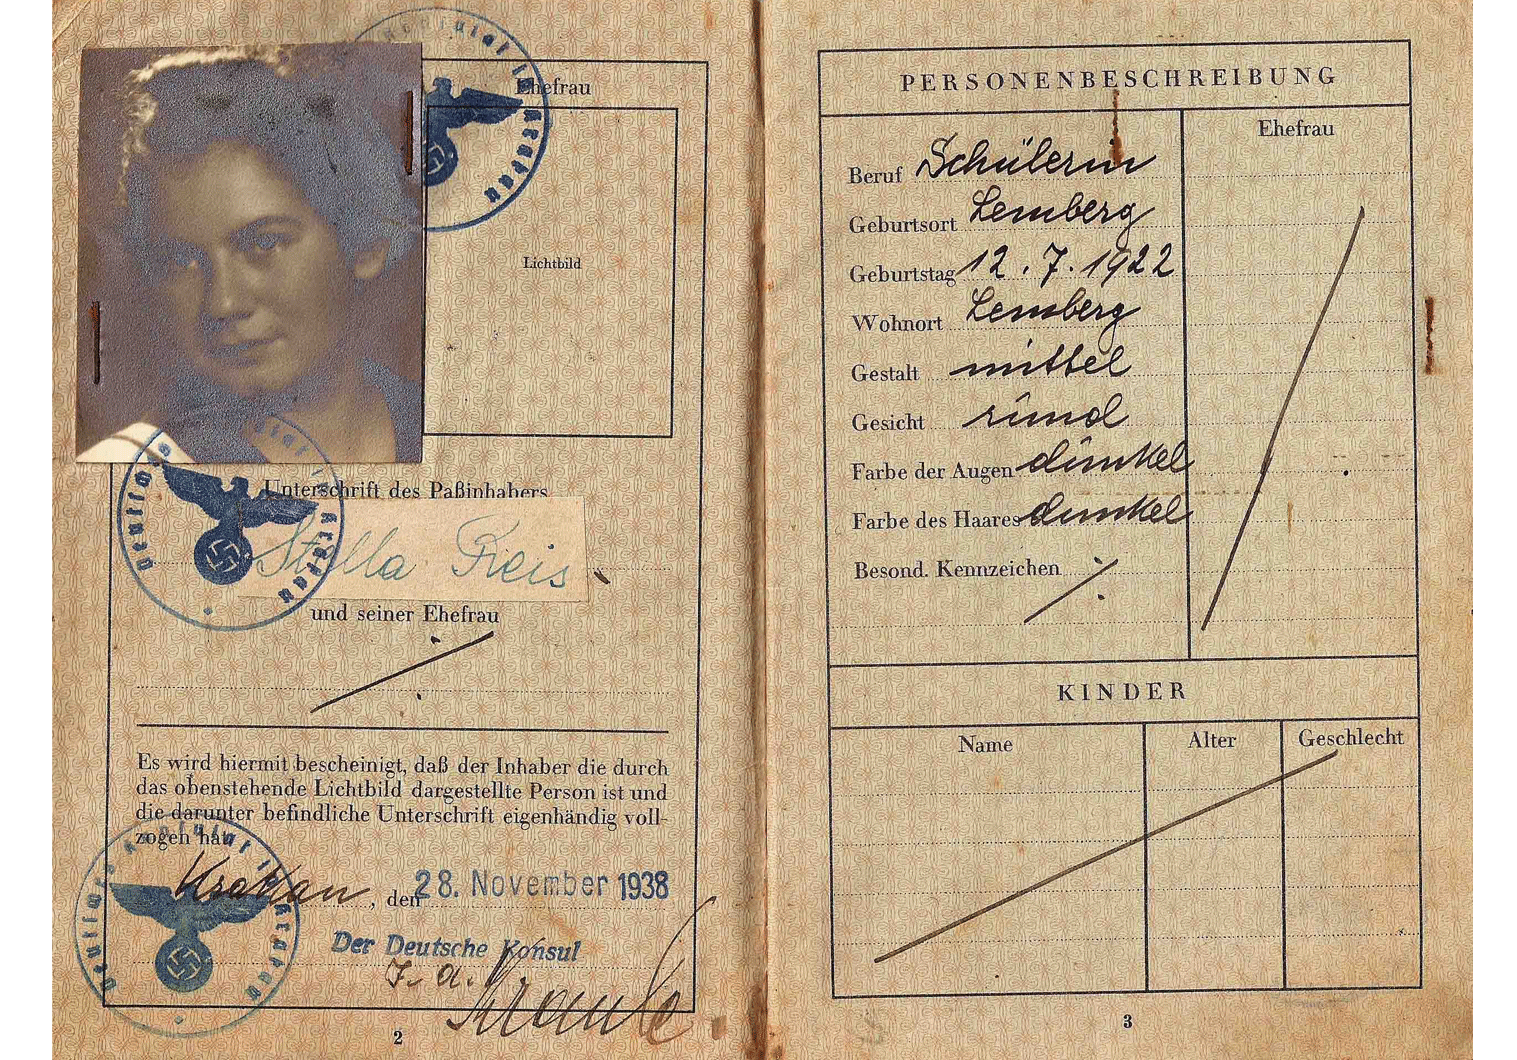 J stamped German passport